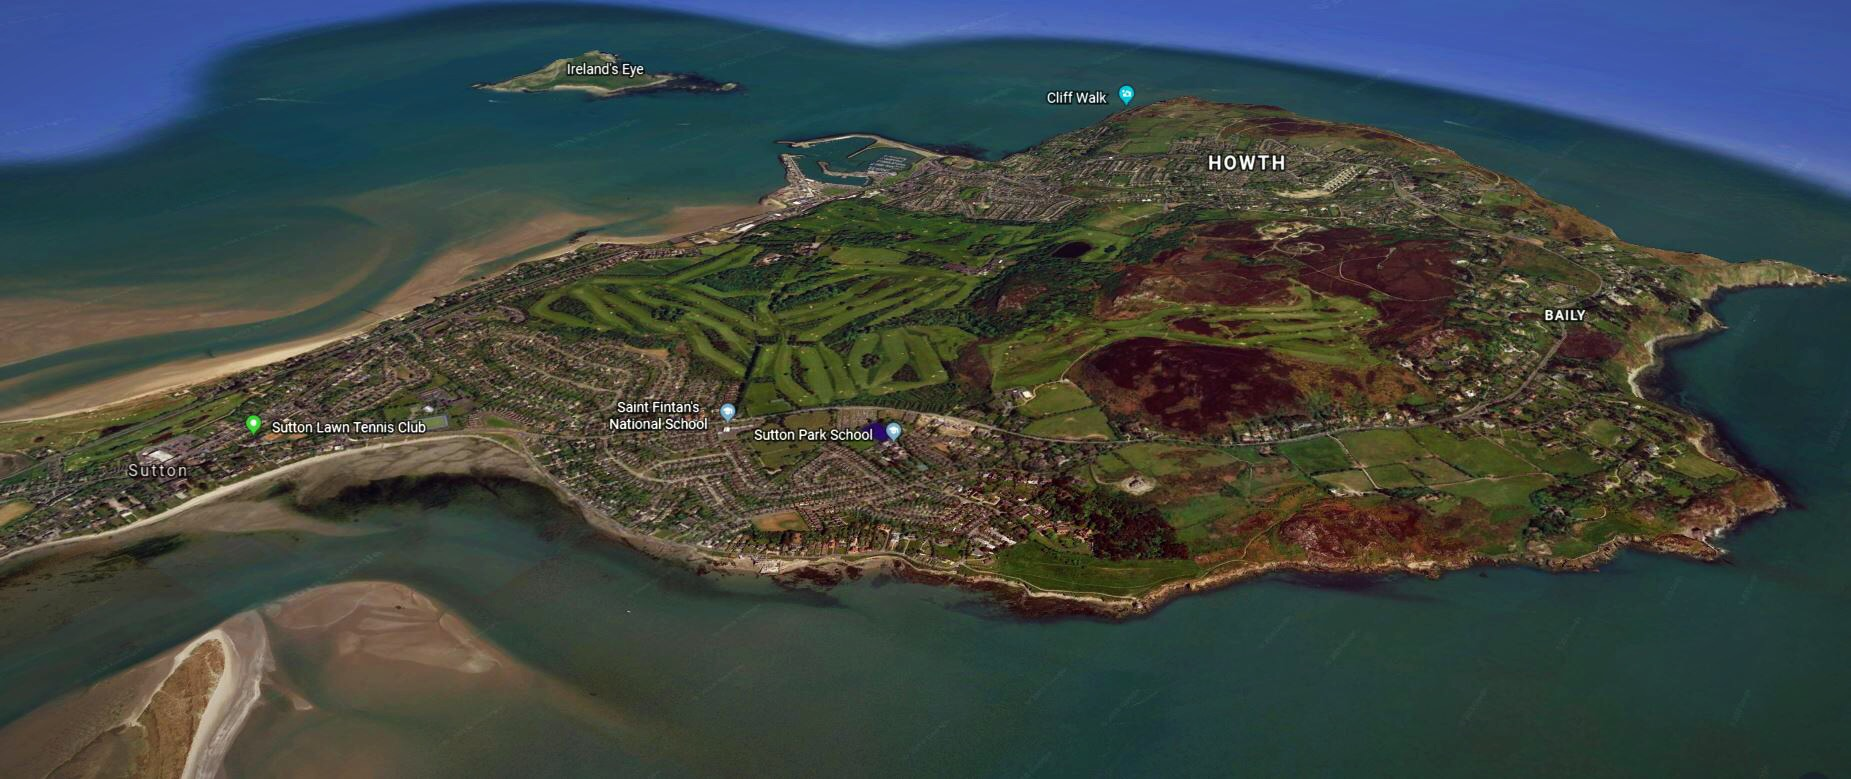 Howth Golf Club Dublin Ireland